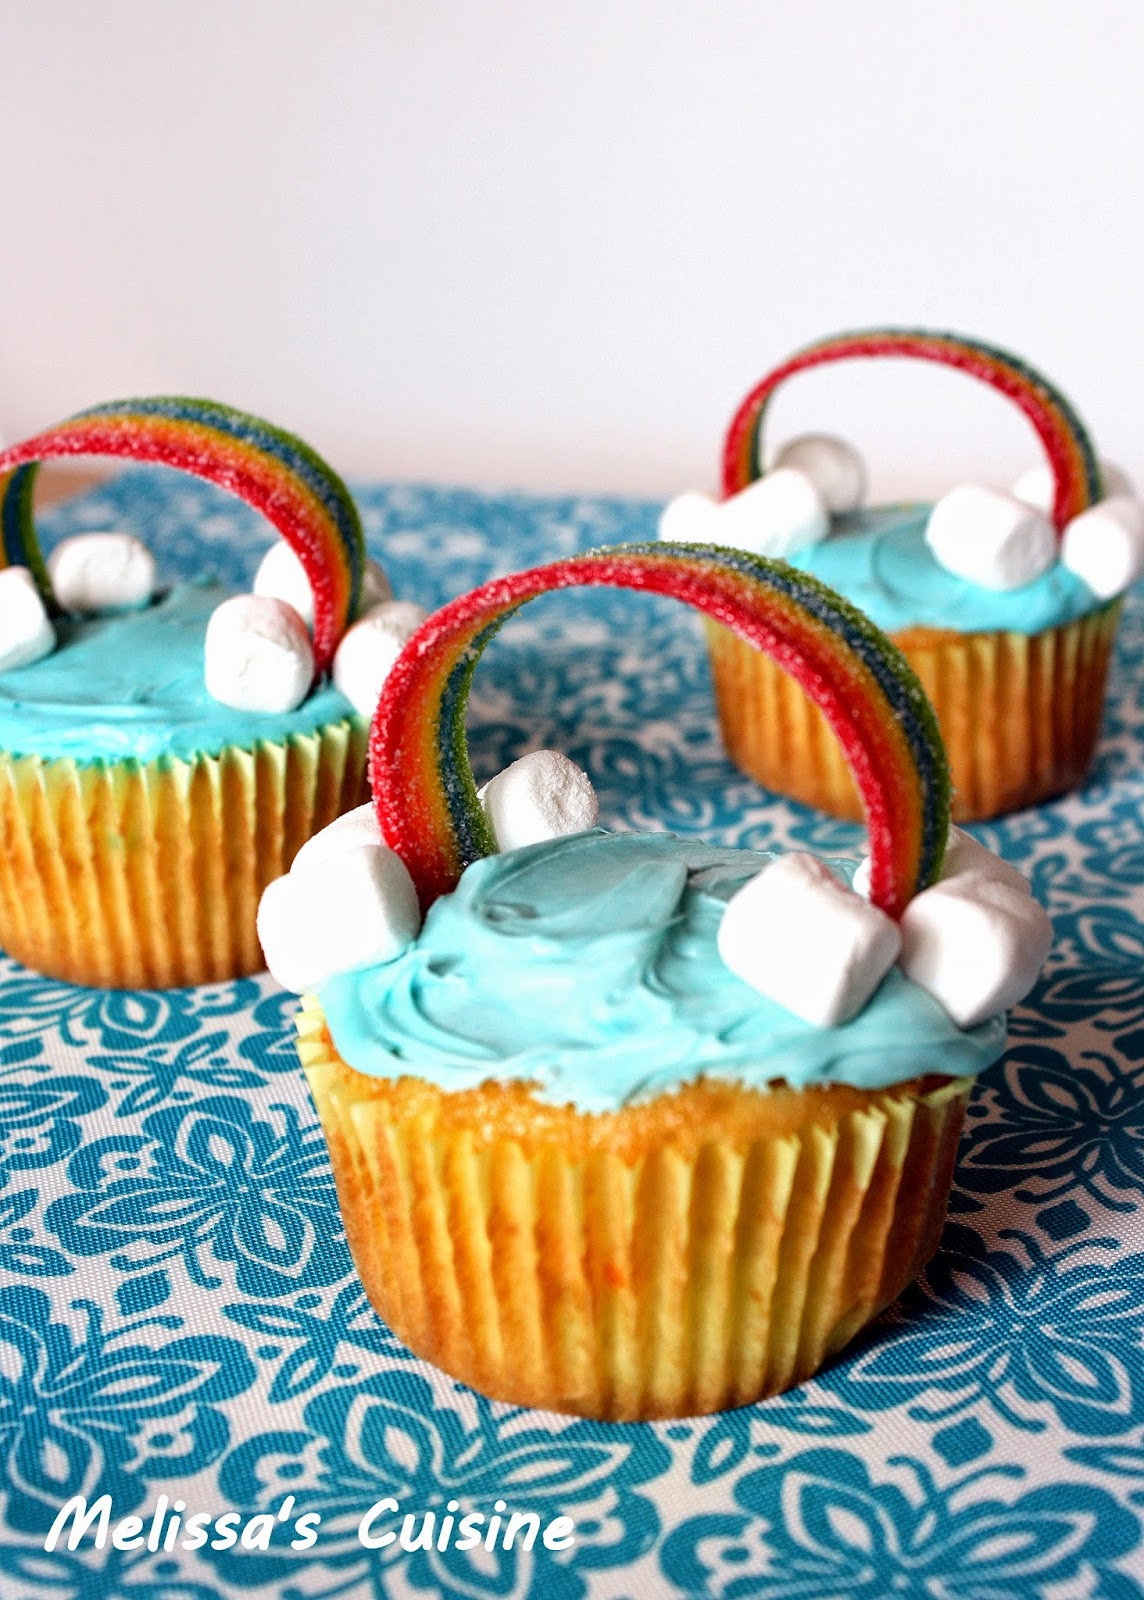 Melissa's Cuisine: Rainbow Cupcakes and Bird's Egg Cupcakes